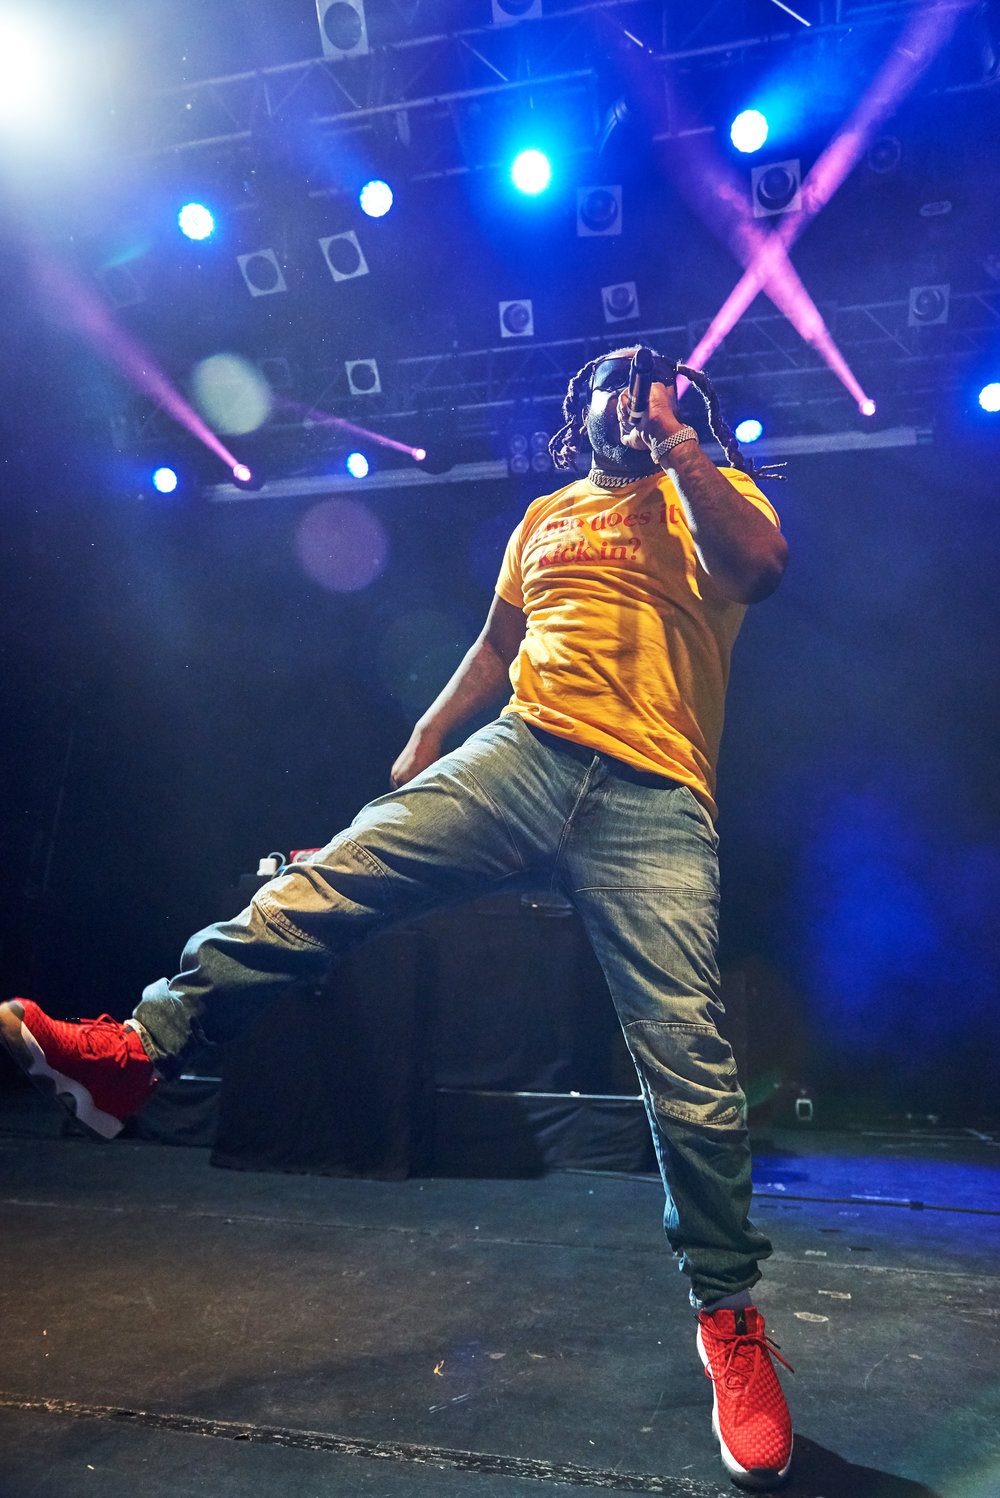 To time Grammy award winner T-Pain, an American singer, rapper songwriter and record producer performs at Koko Camden London, United Kingdom on June 15th 2018. The warm up acts were The Compozers an instrumental band and grime artist FLOHIO.